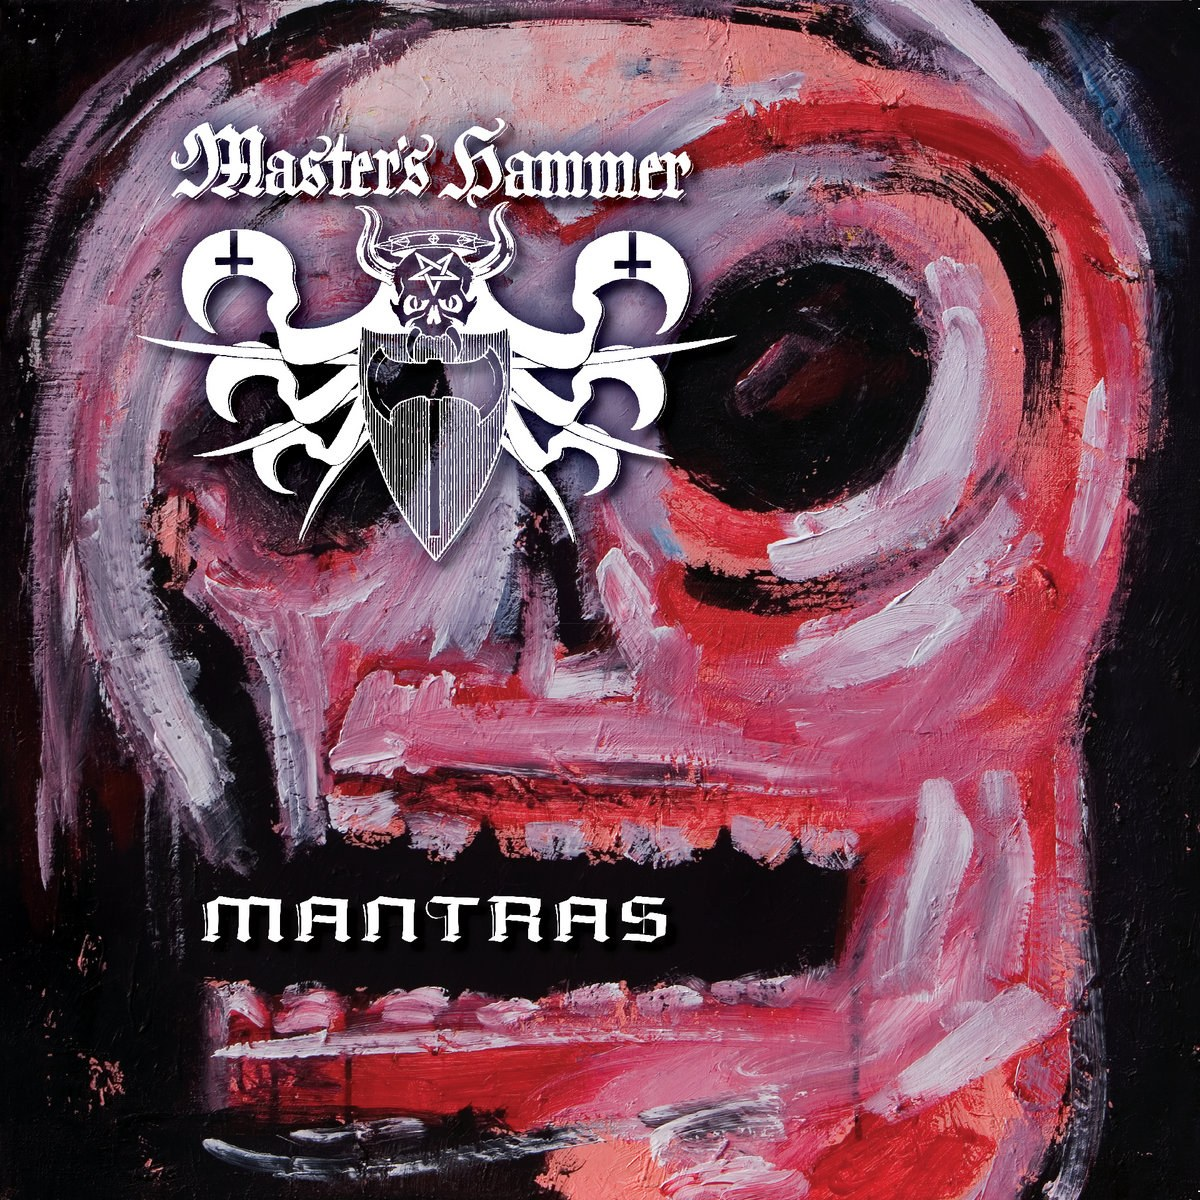 Review for Master's Hammer - Mantras